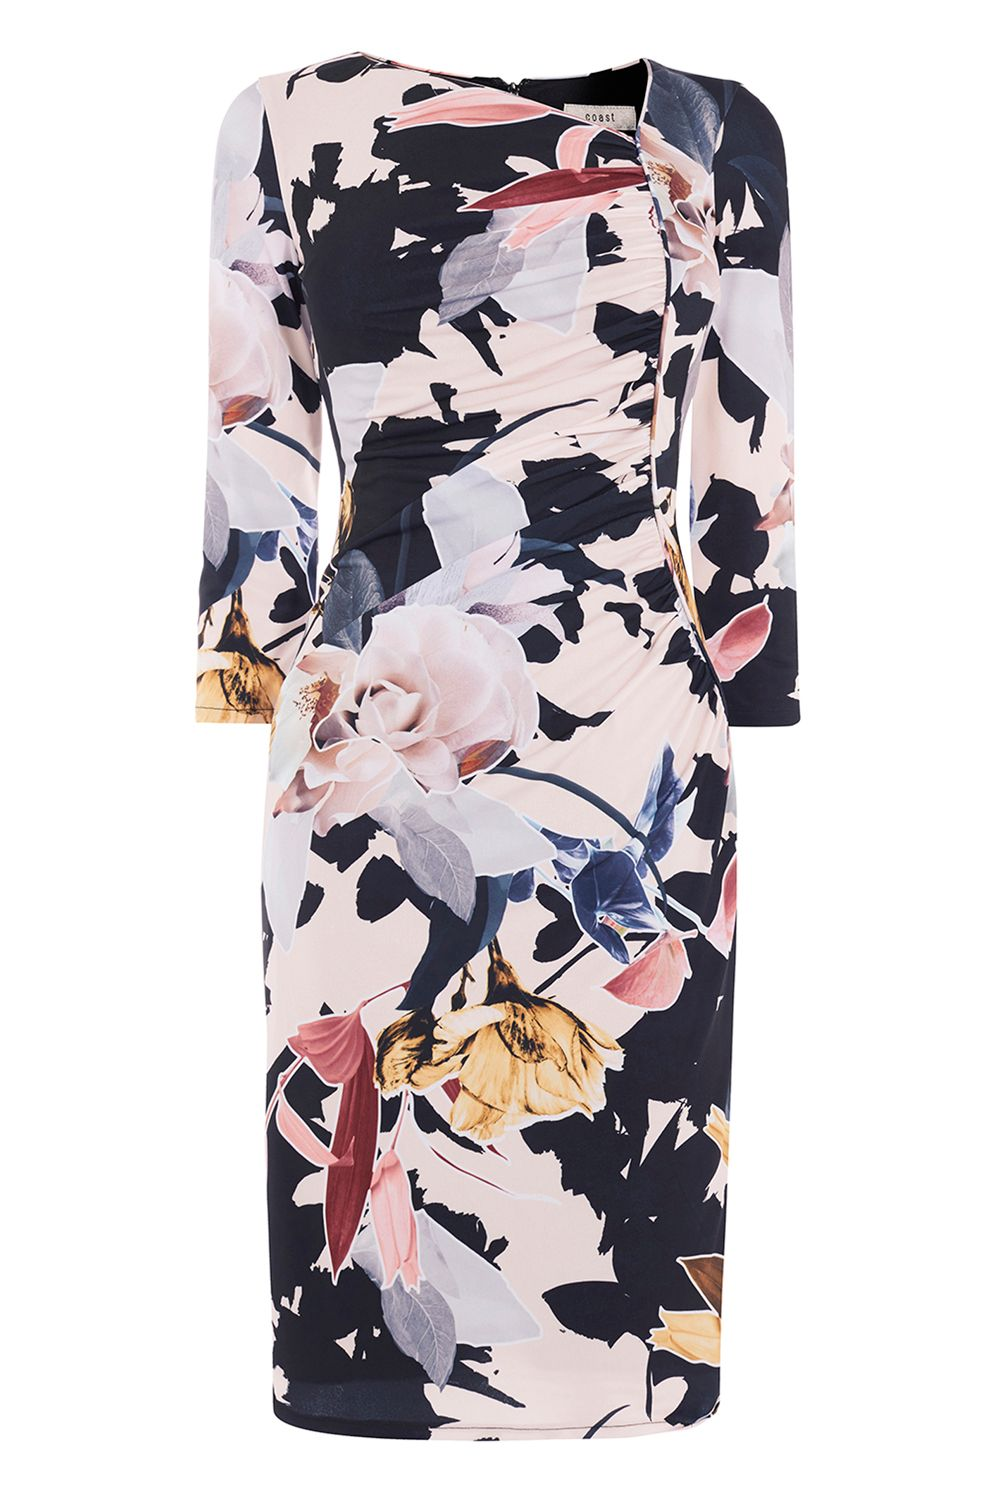 Coast Canta Print Jersey Dress Me, Multi-Coloured